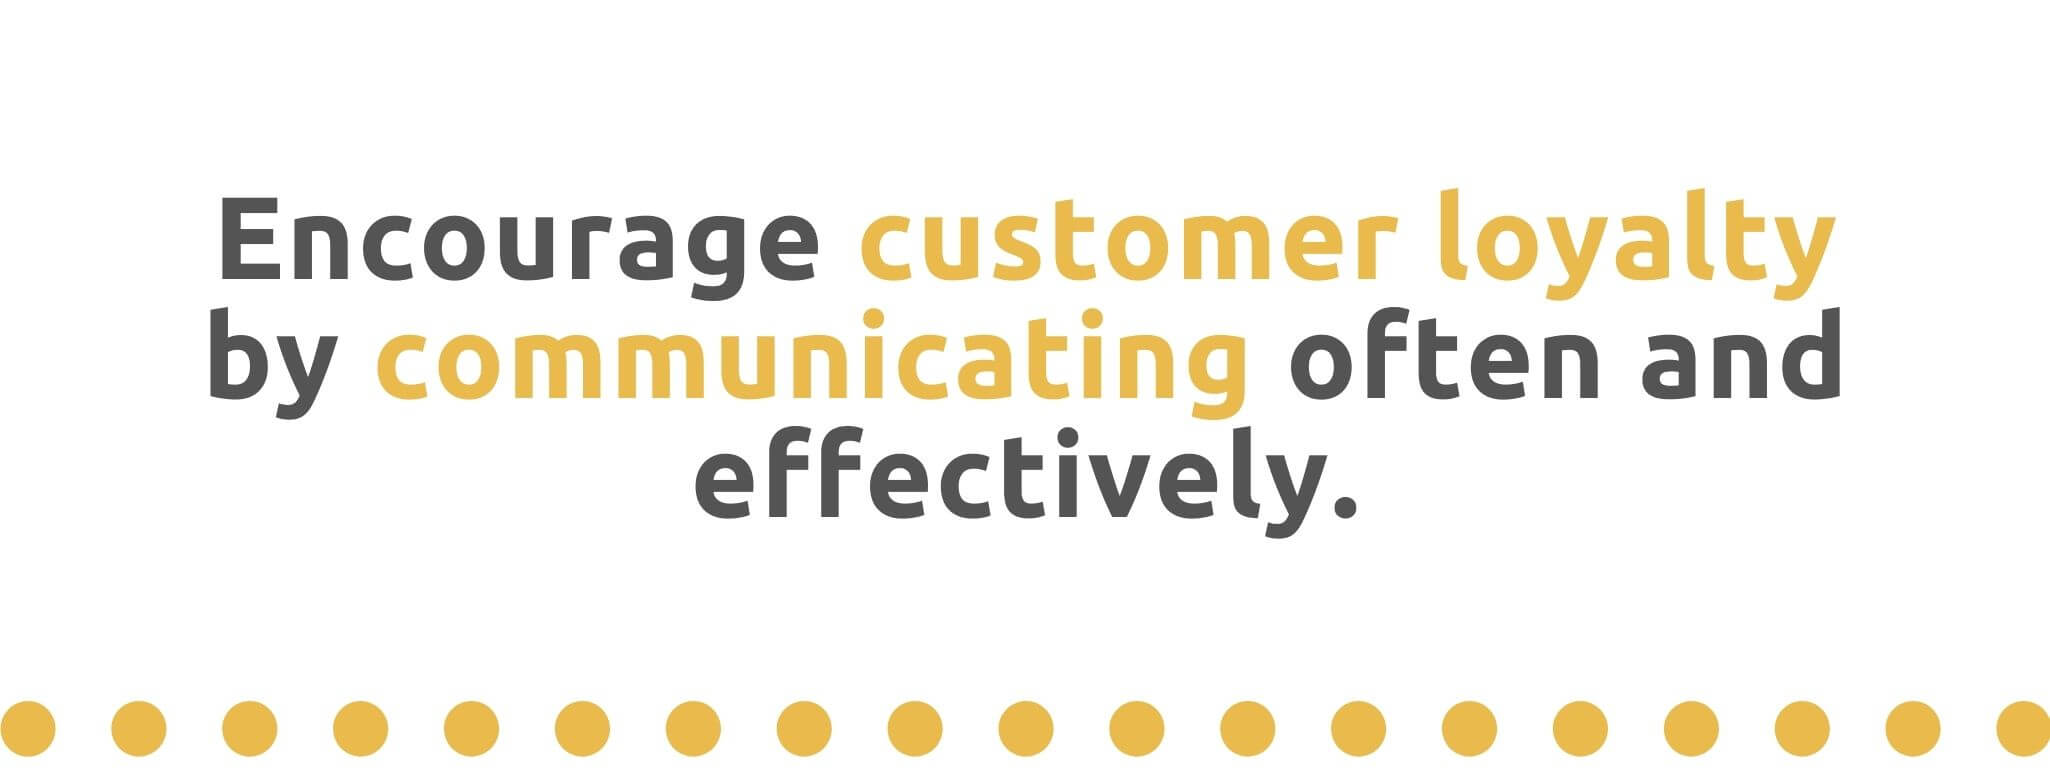 Encourage customer loyalty by communicating often and effectively - 21 Ways to Encourage Customer Loyalty - Replyco